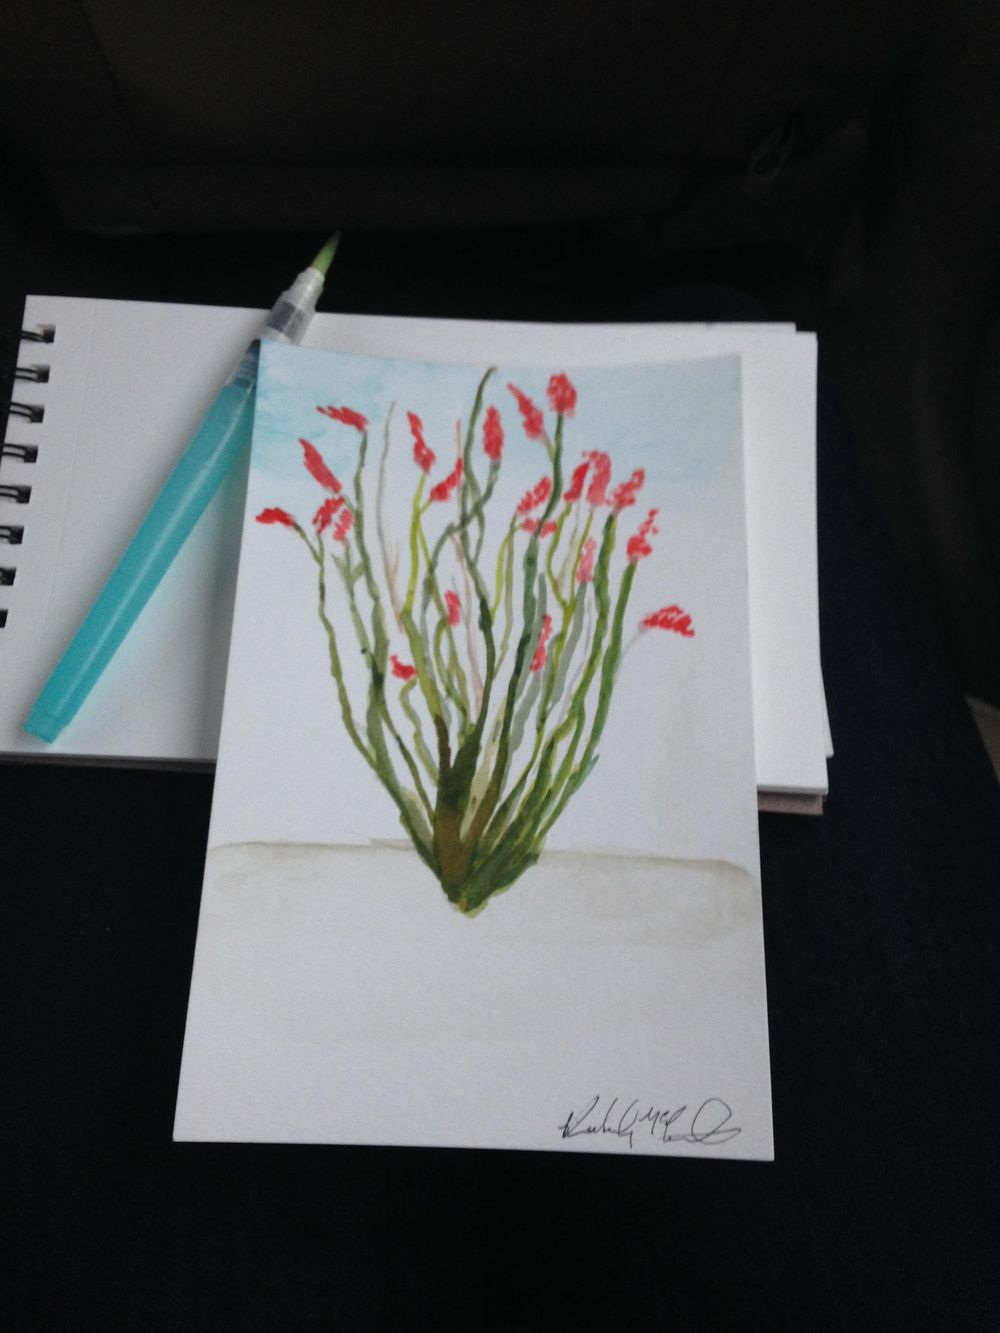 Water Color Study of the things I love most  - image 2 - student project